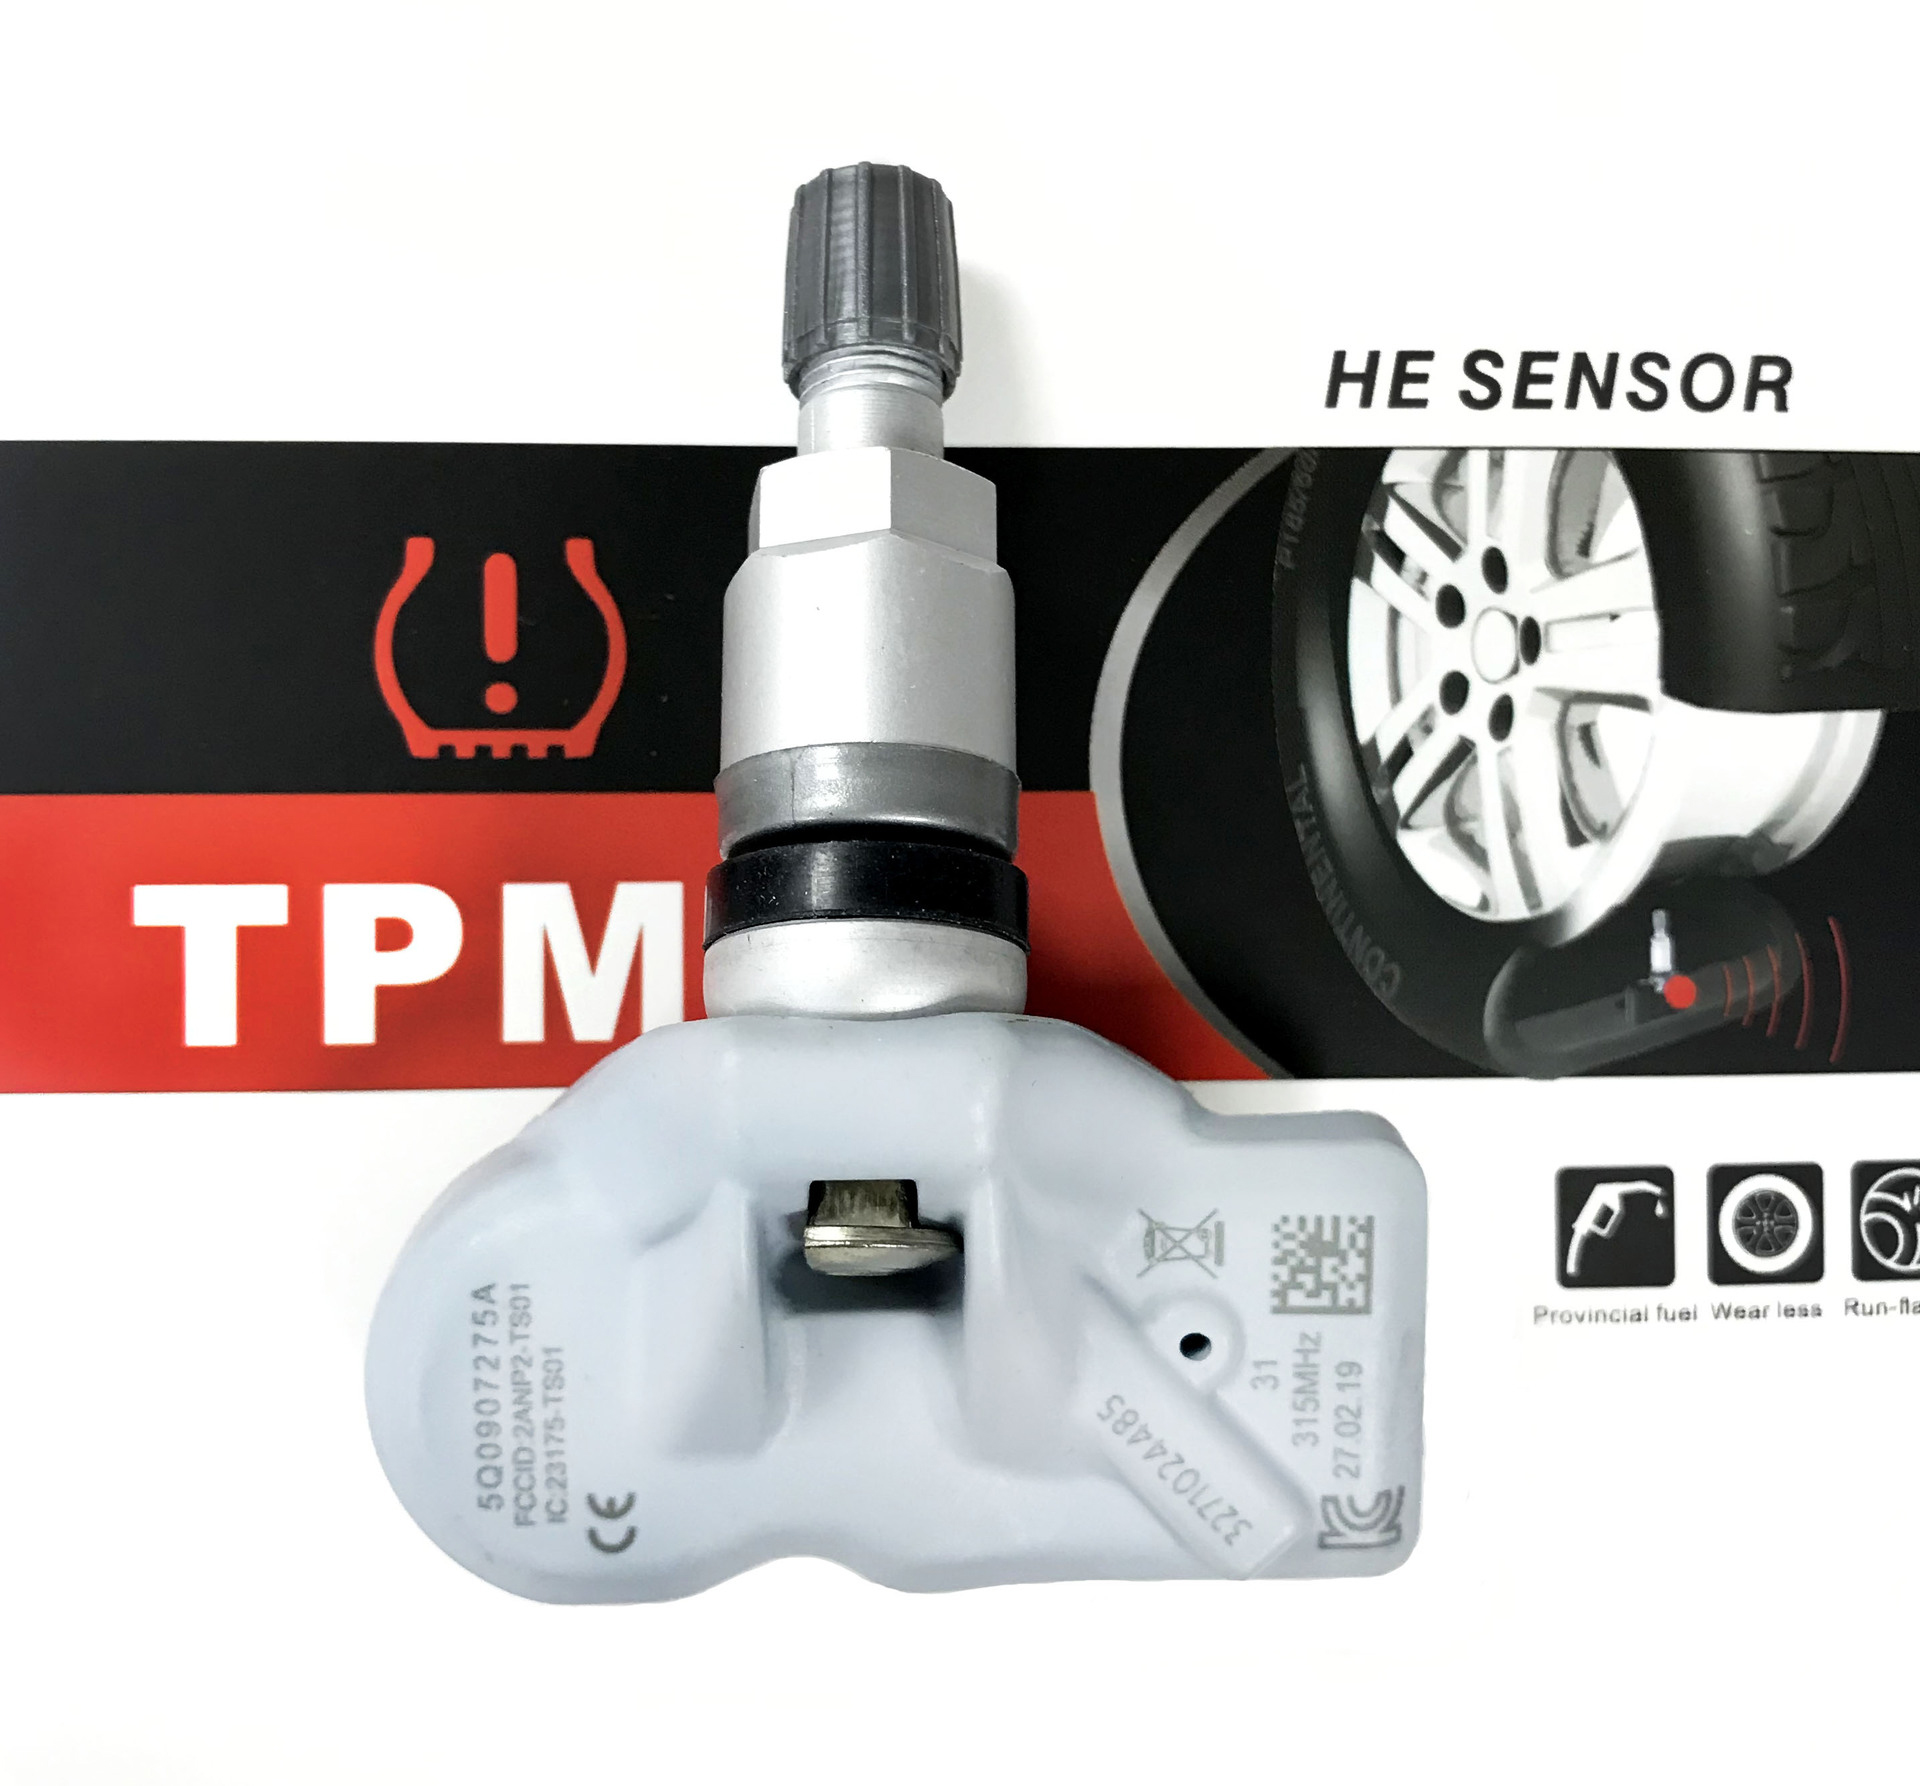 5Q0907275A Tire Pressure Sensor Monitoring System TPMS 315MHz For Audi RS3 SQ7 Porsche Boxster Cayenne Manca Panamera|Tire Pressure Monitor Systems| |  - title=